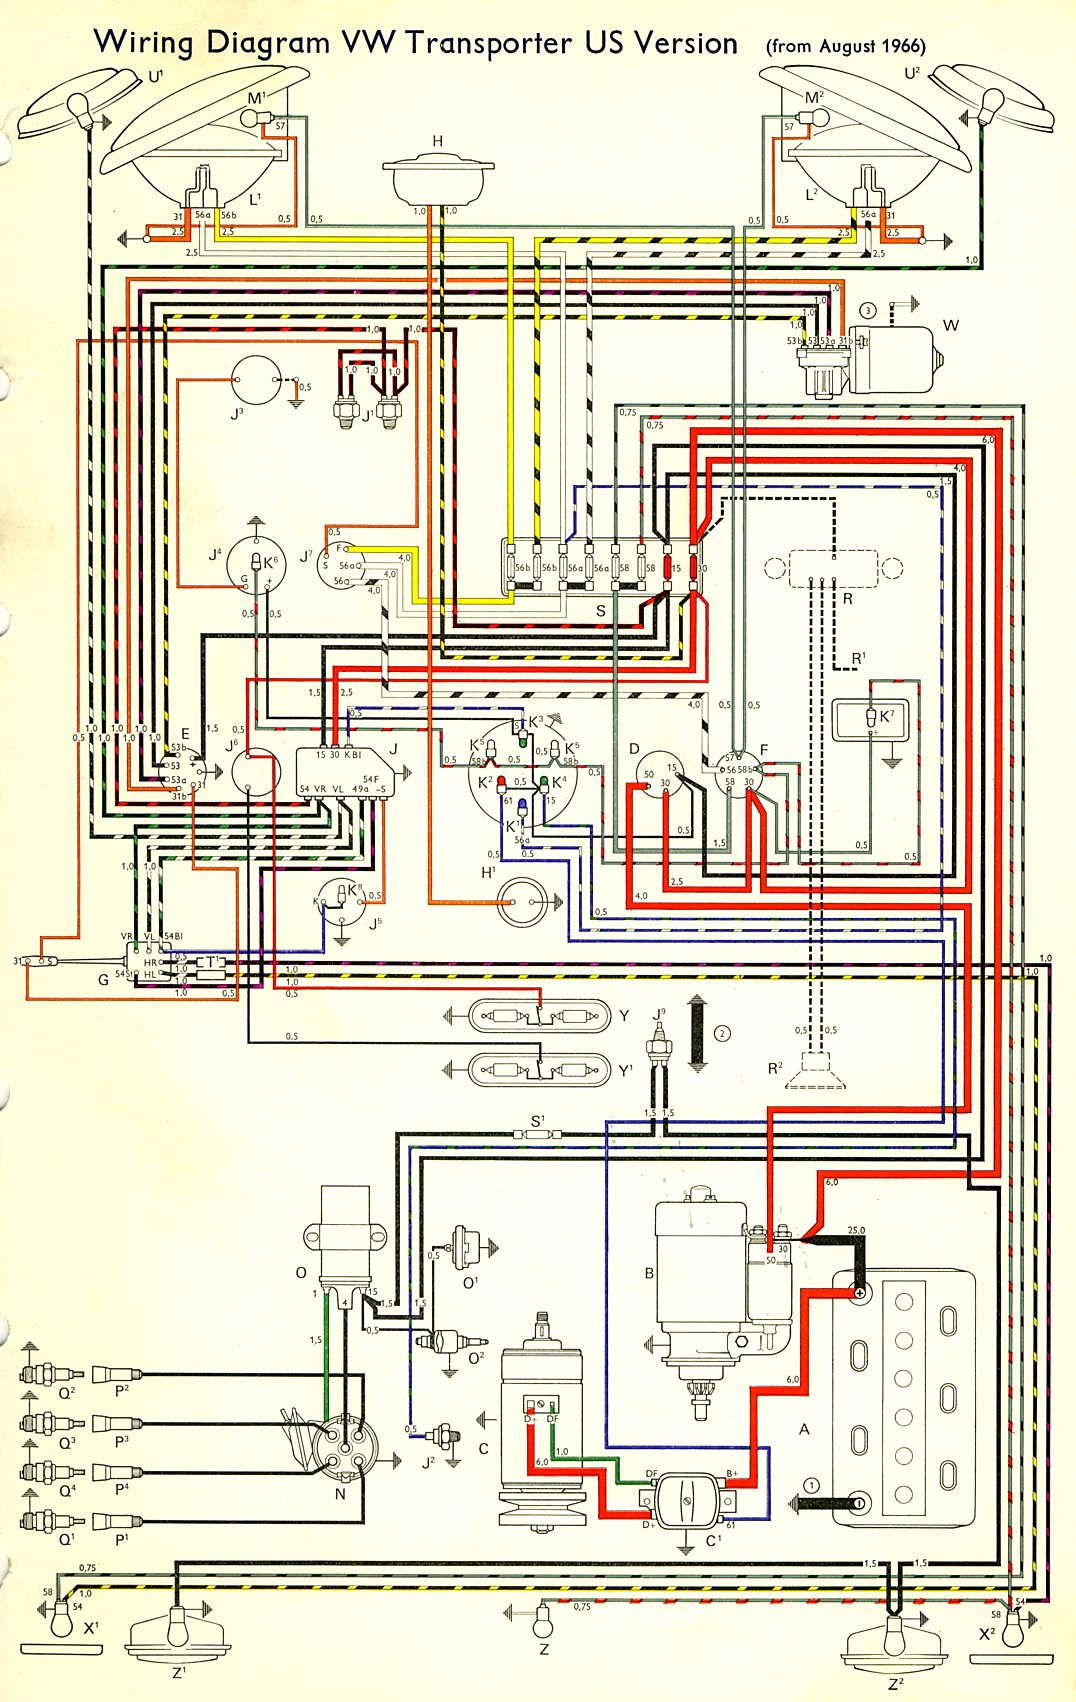 bus_67_USA thesamba com type 2 wiring diagrams bus diagram at aneh.co